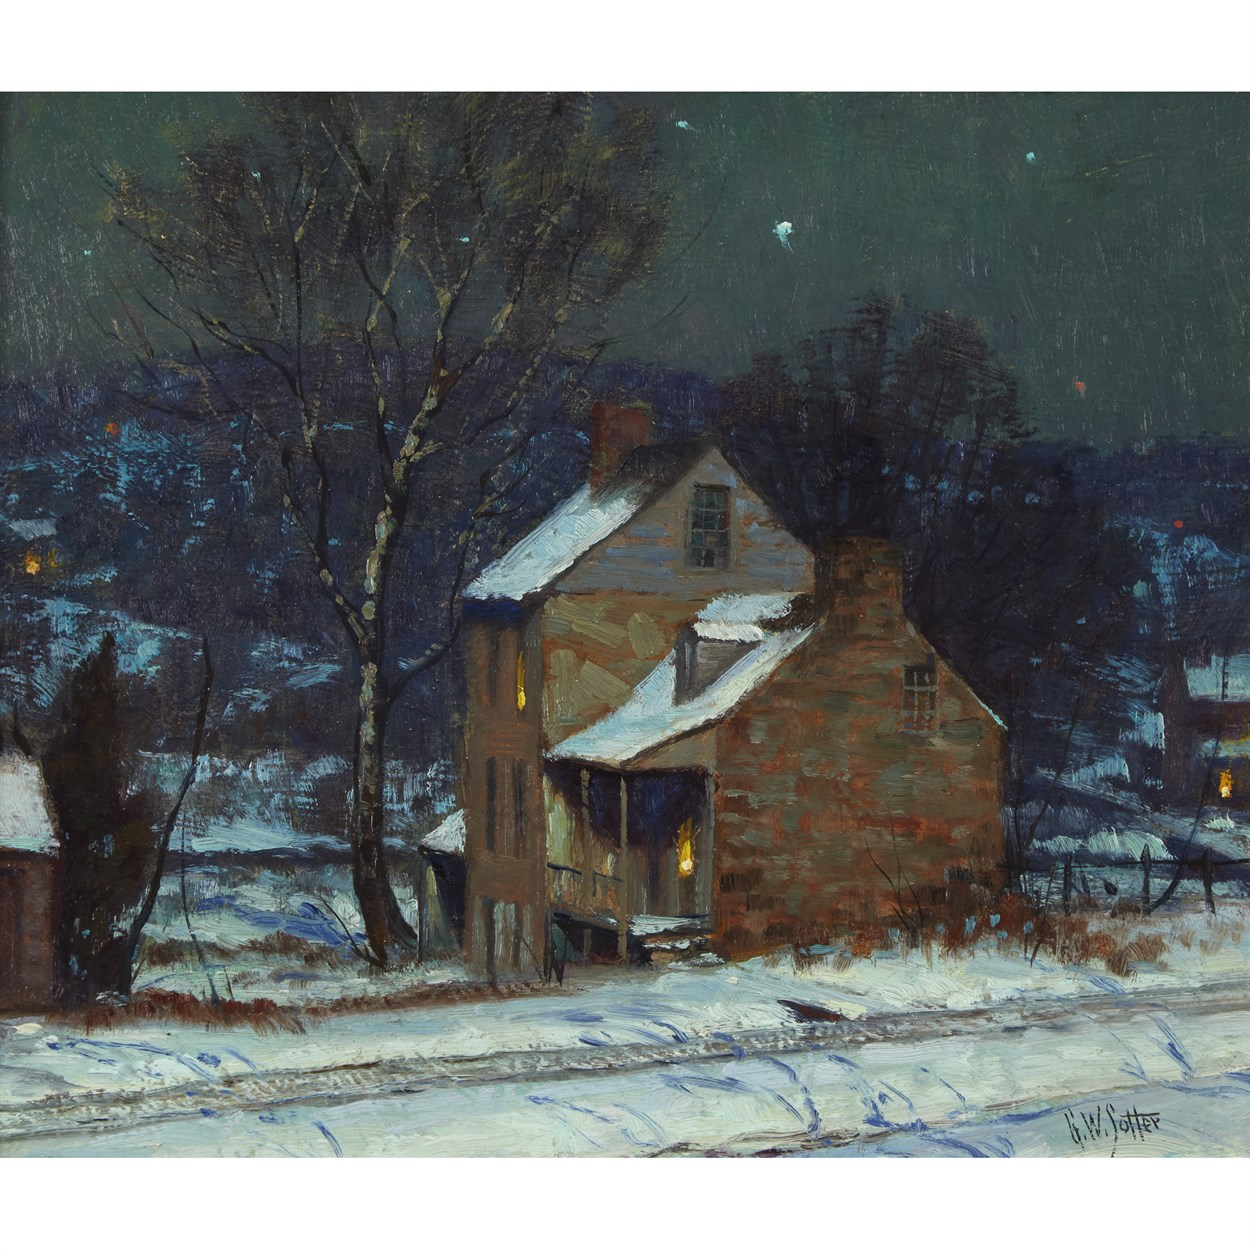 Lot 42 - George William Sotter (American, 1879-1953)